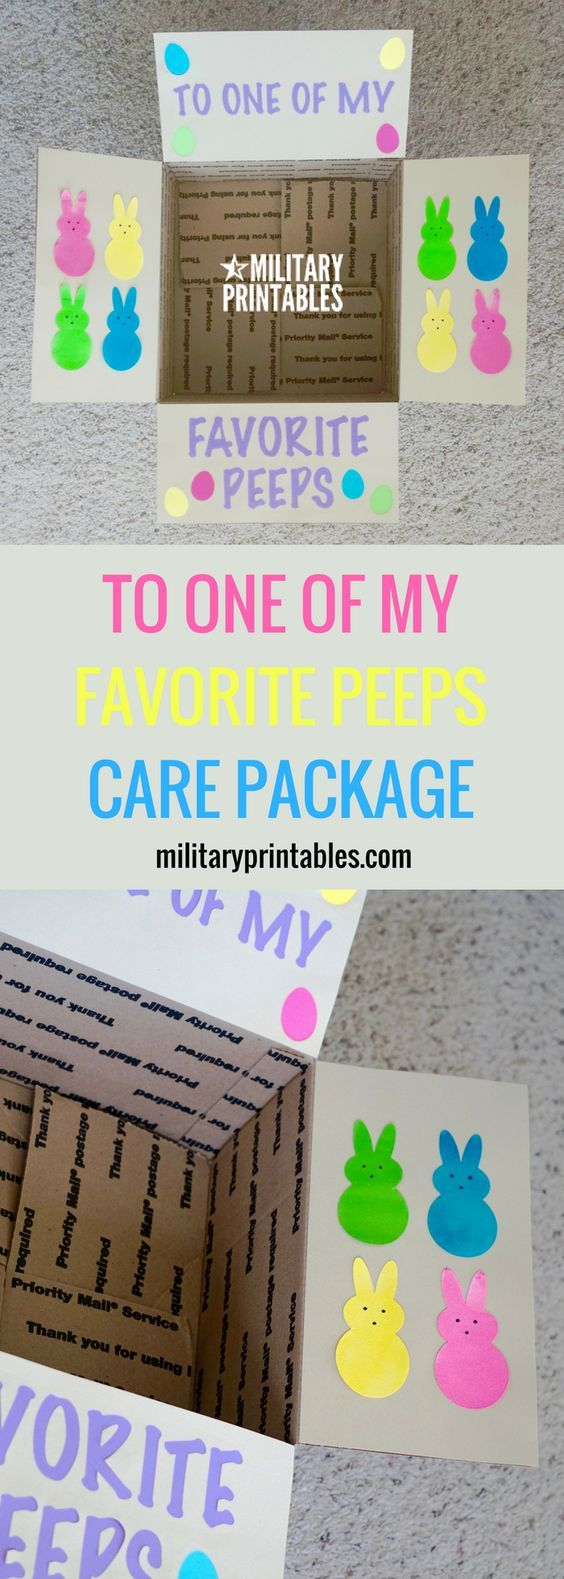 Easter care package spring candy peeps missionary package ideas easter care package spring candy peeps negle Images